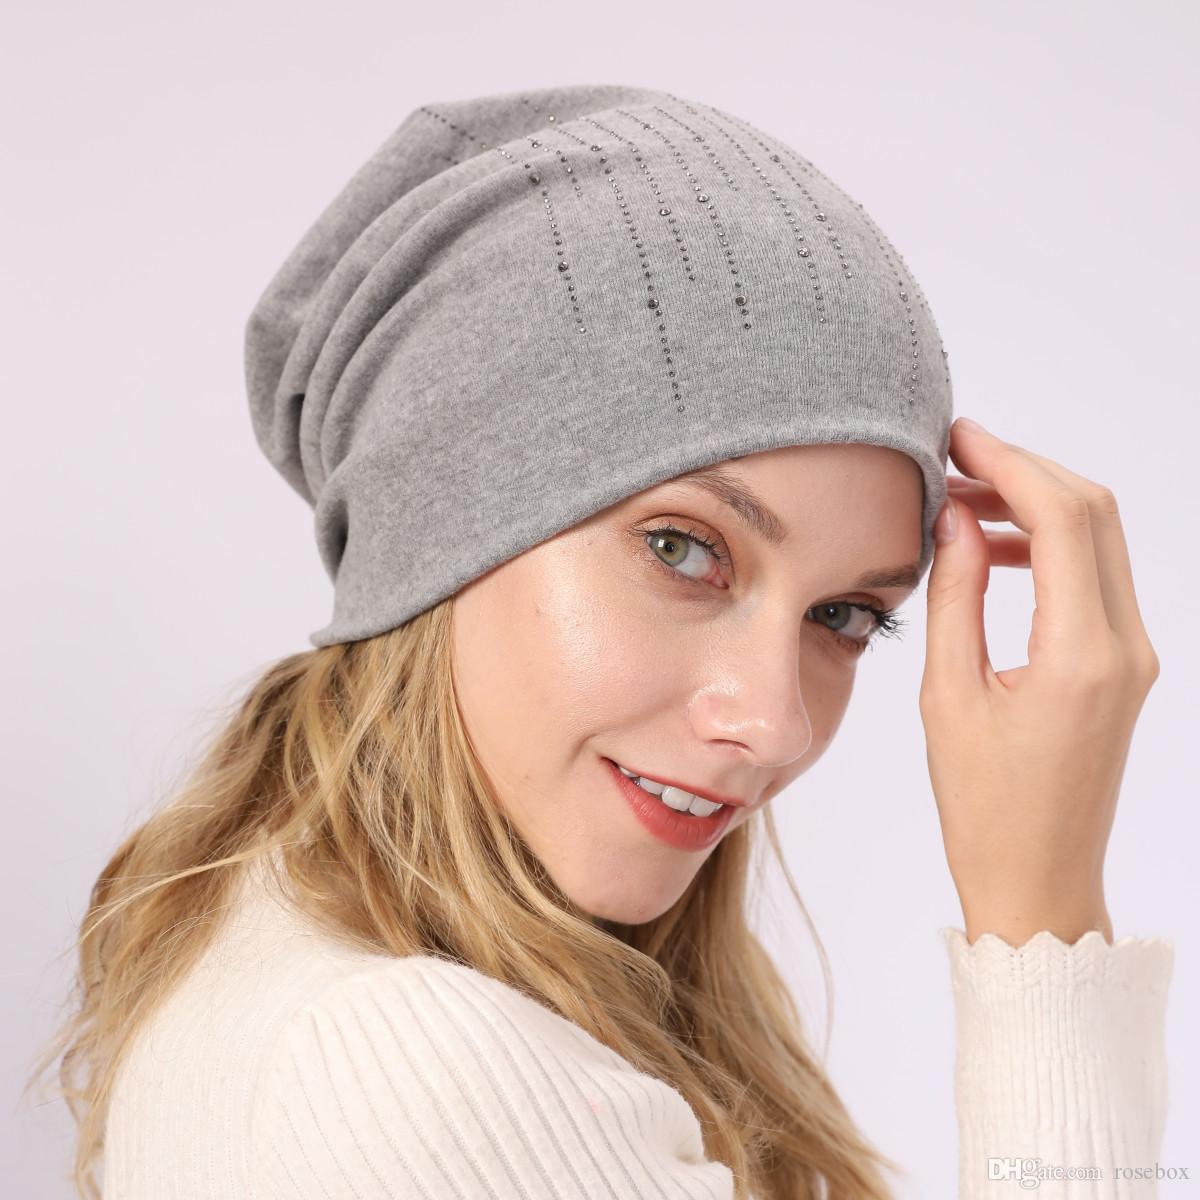 Women Rhinestone Knitted Cap Winter Thin Cotton Hat Autumn Outdoor Windproof Beanies Elastic Warm Hats 2 Pieces ePacket